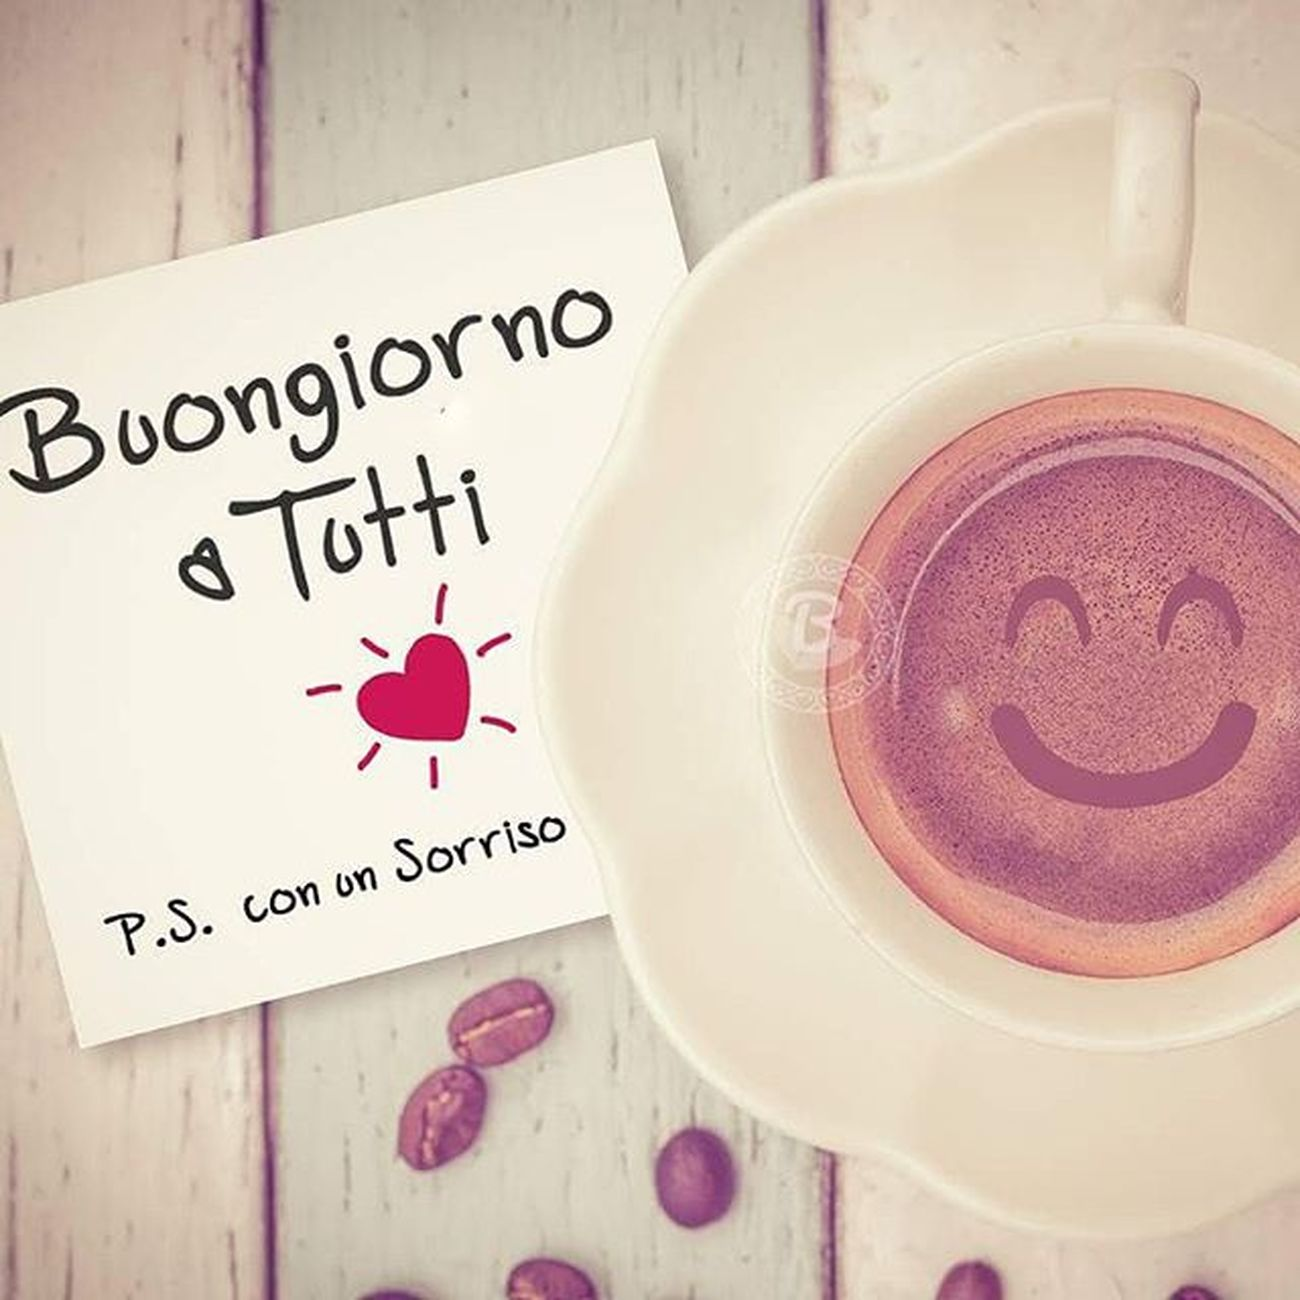 Buon giorno ❤ Buongiorno Buongiornomondo Buonsabato ésabato Finalmente Conunbelsorriso Bellissimagiornata Sivaalavoro Atwork Job Letsstart Goodmorning Morning Day Tagsforlikes .com Daytime Sunrise Wakeup WakingUp Ready Sleepy Breakfast Instagood Sky Photooftheday gettingready goingout sunshine instamorning early